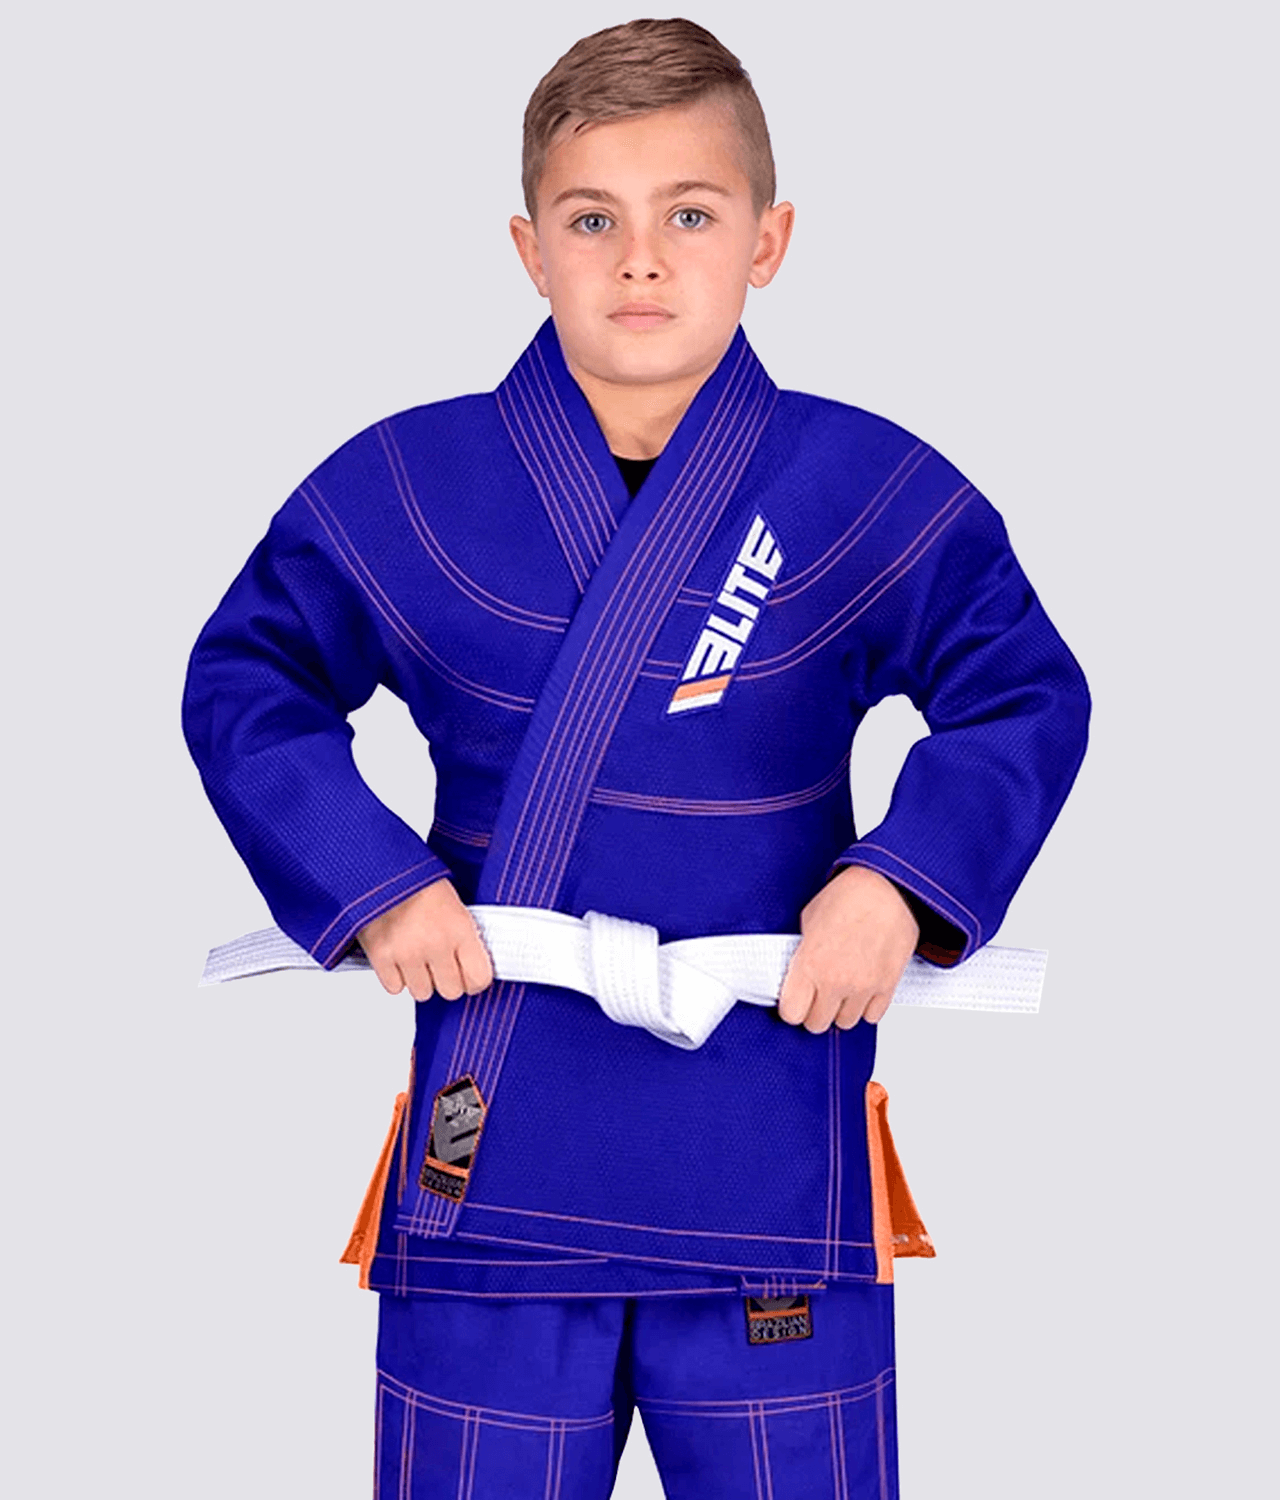 Elite Sports Ultra Light Preshrunk Antibacterial Blue Kids Brazilian Jiu Jitsu BJJ Gi With Free White Belt